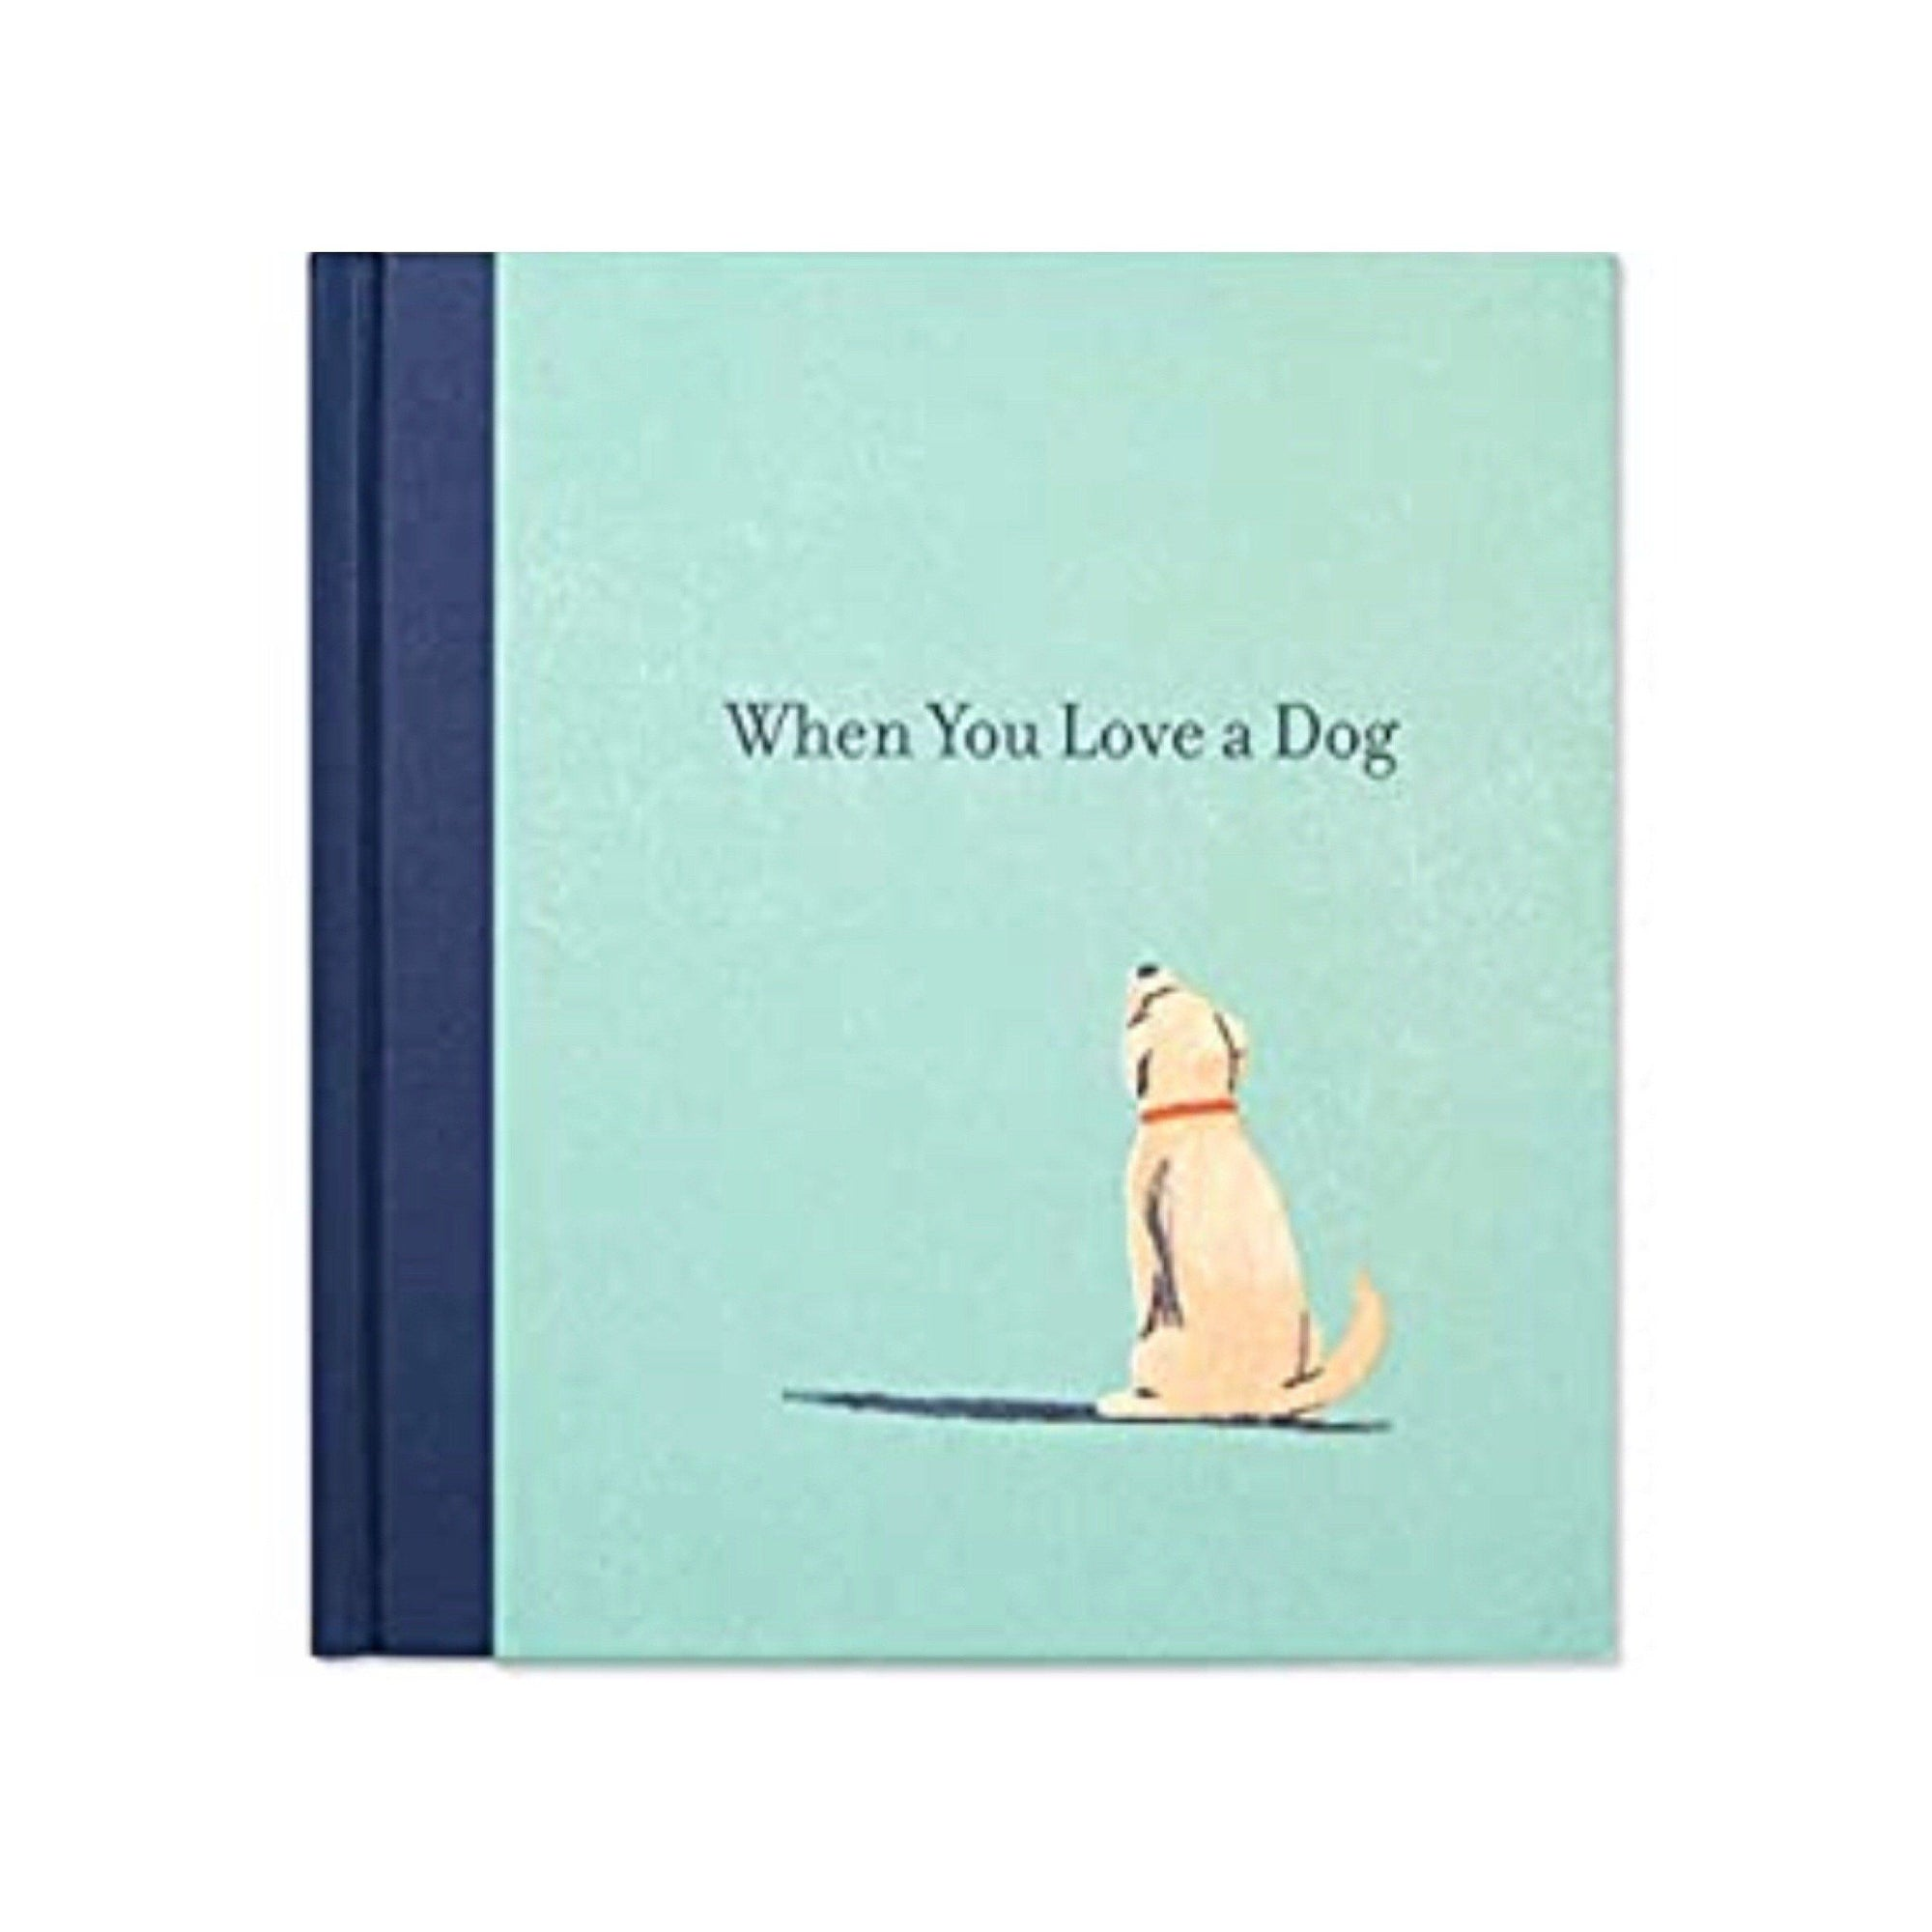 When You Love a Dog - A Gift Book Gift Books Compendium Books